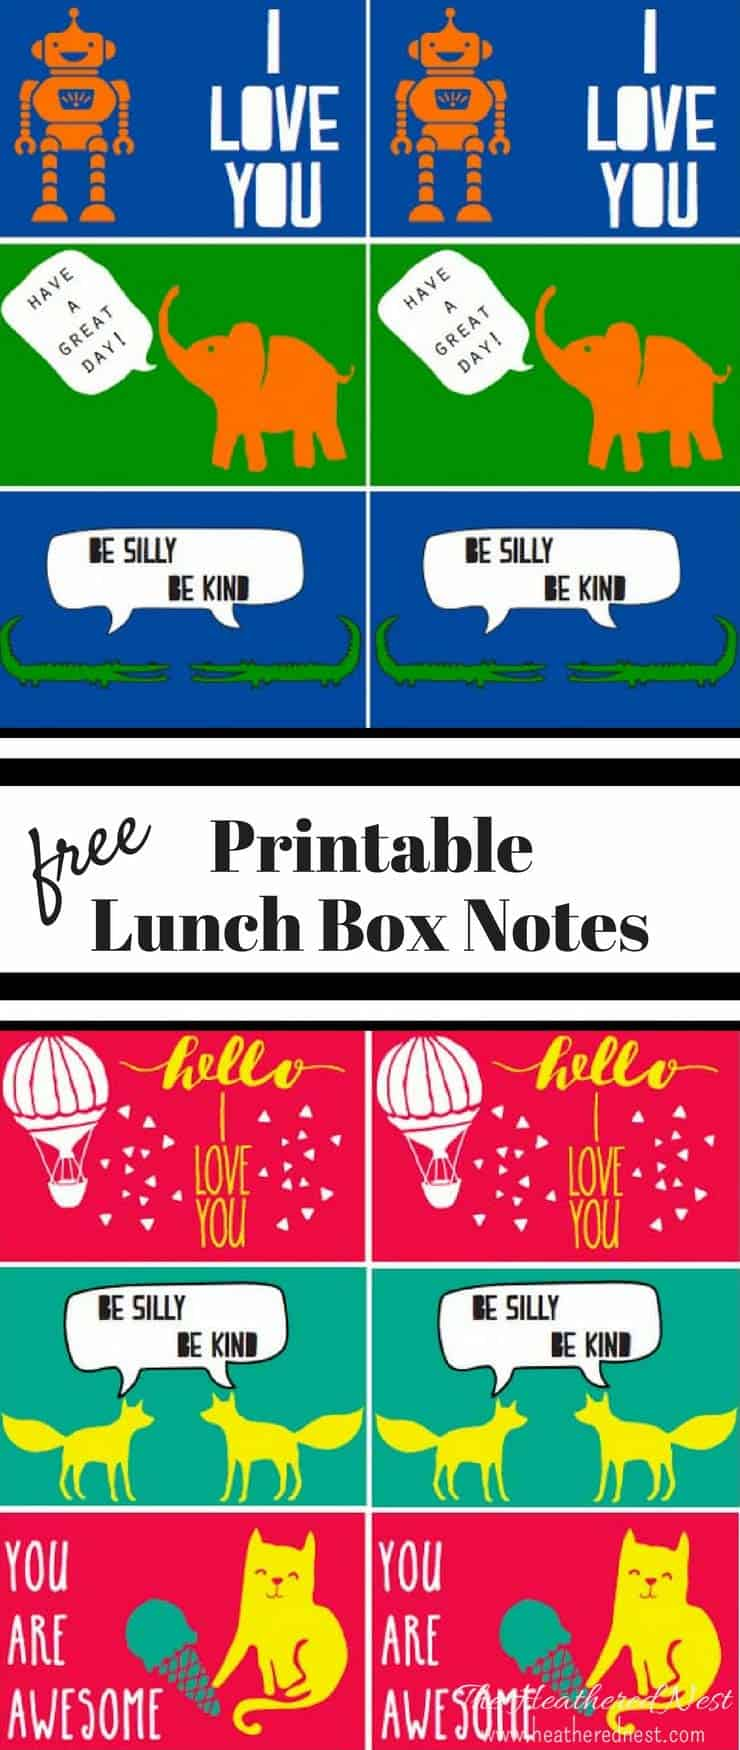 AWESOME FREE PRINTABLE DOWNLOAD!! Back to School Cute Love Notes | Printable Lunch Cards for Kids from www.heatherednest.com